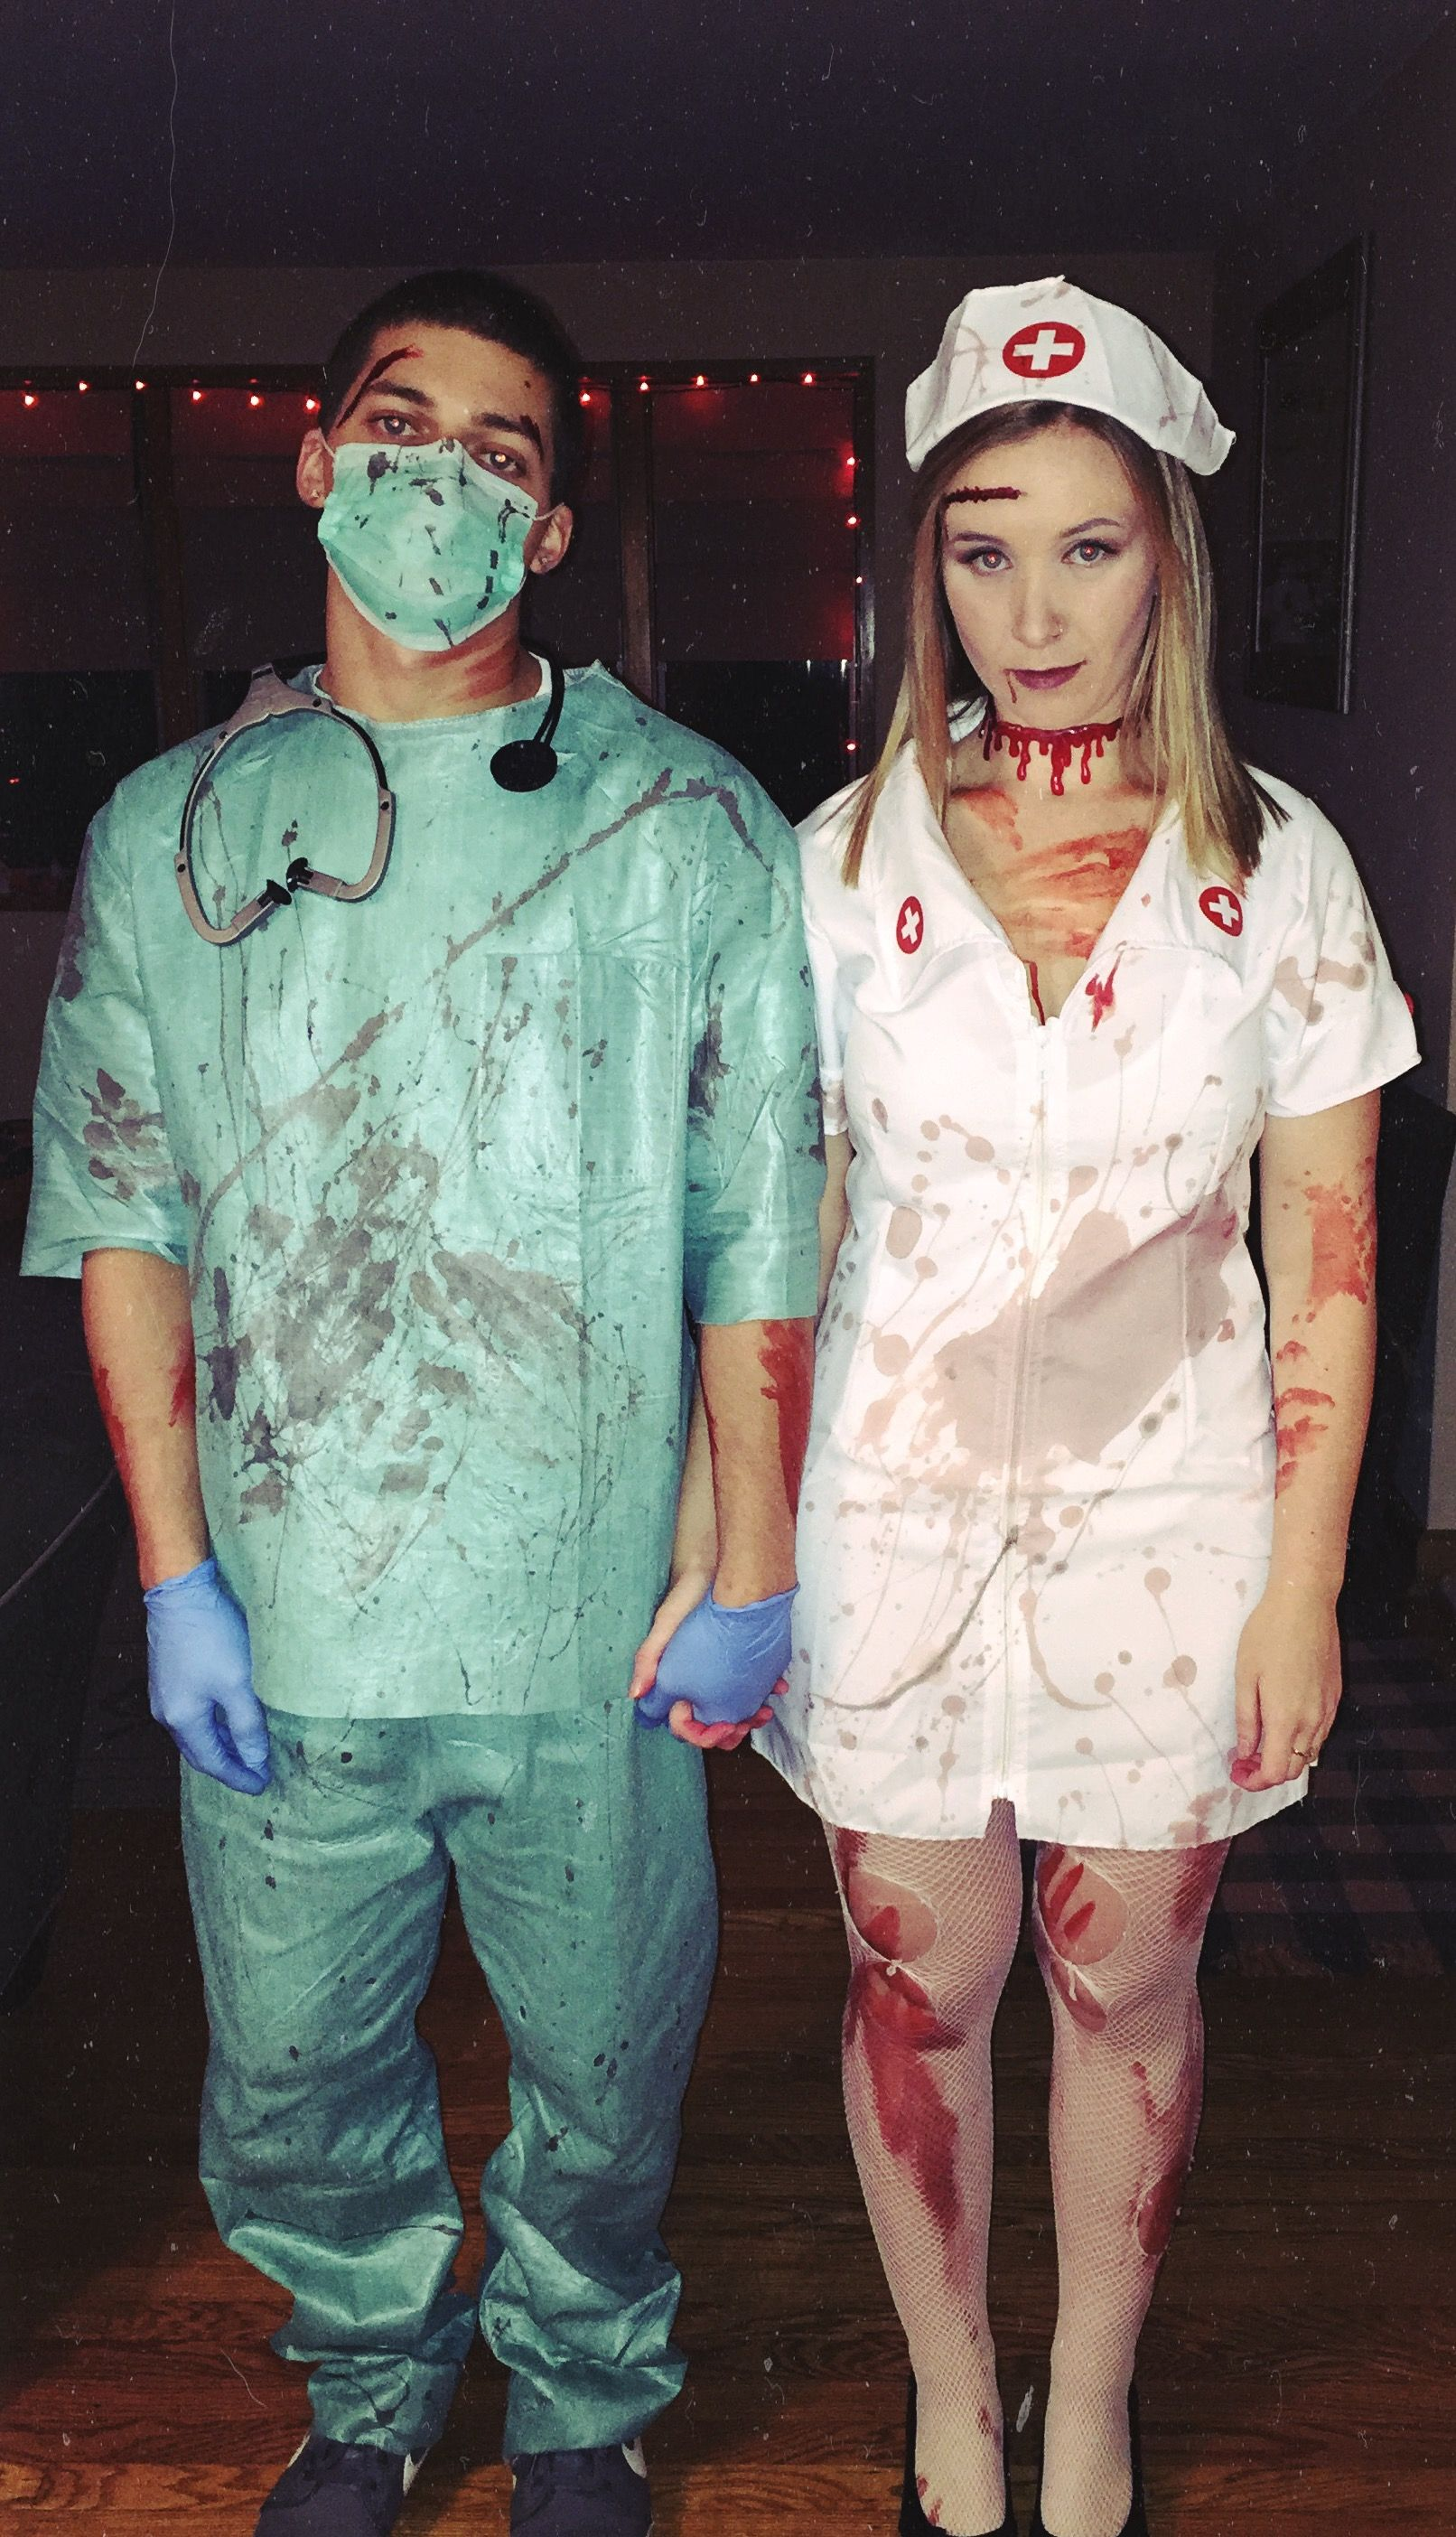 efe04e91e5909 Couples costume. Killer doctor and nurse costume. Killer couples ...